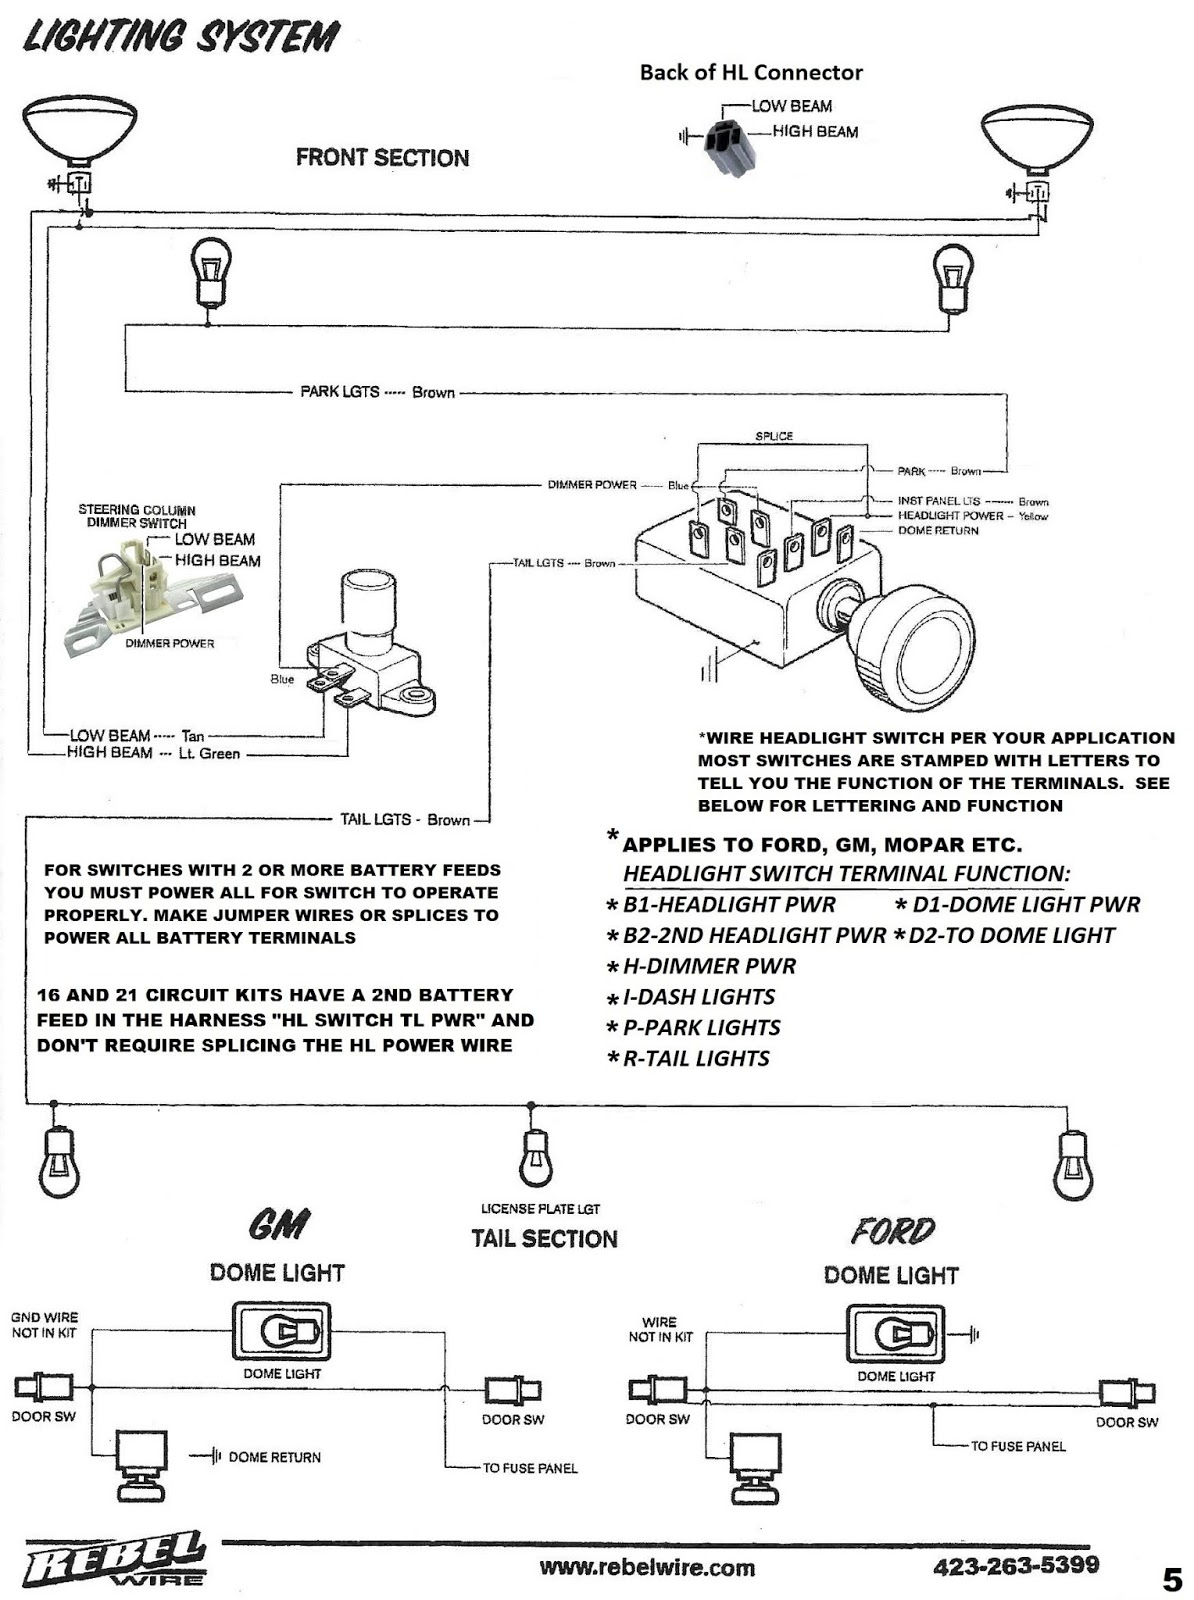 1936 Ford Headlight Switch Wiring | Wiring Library